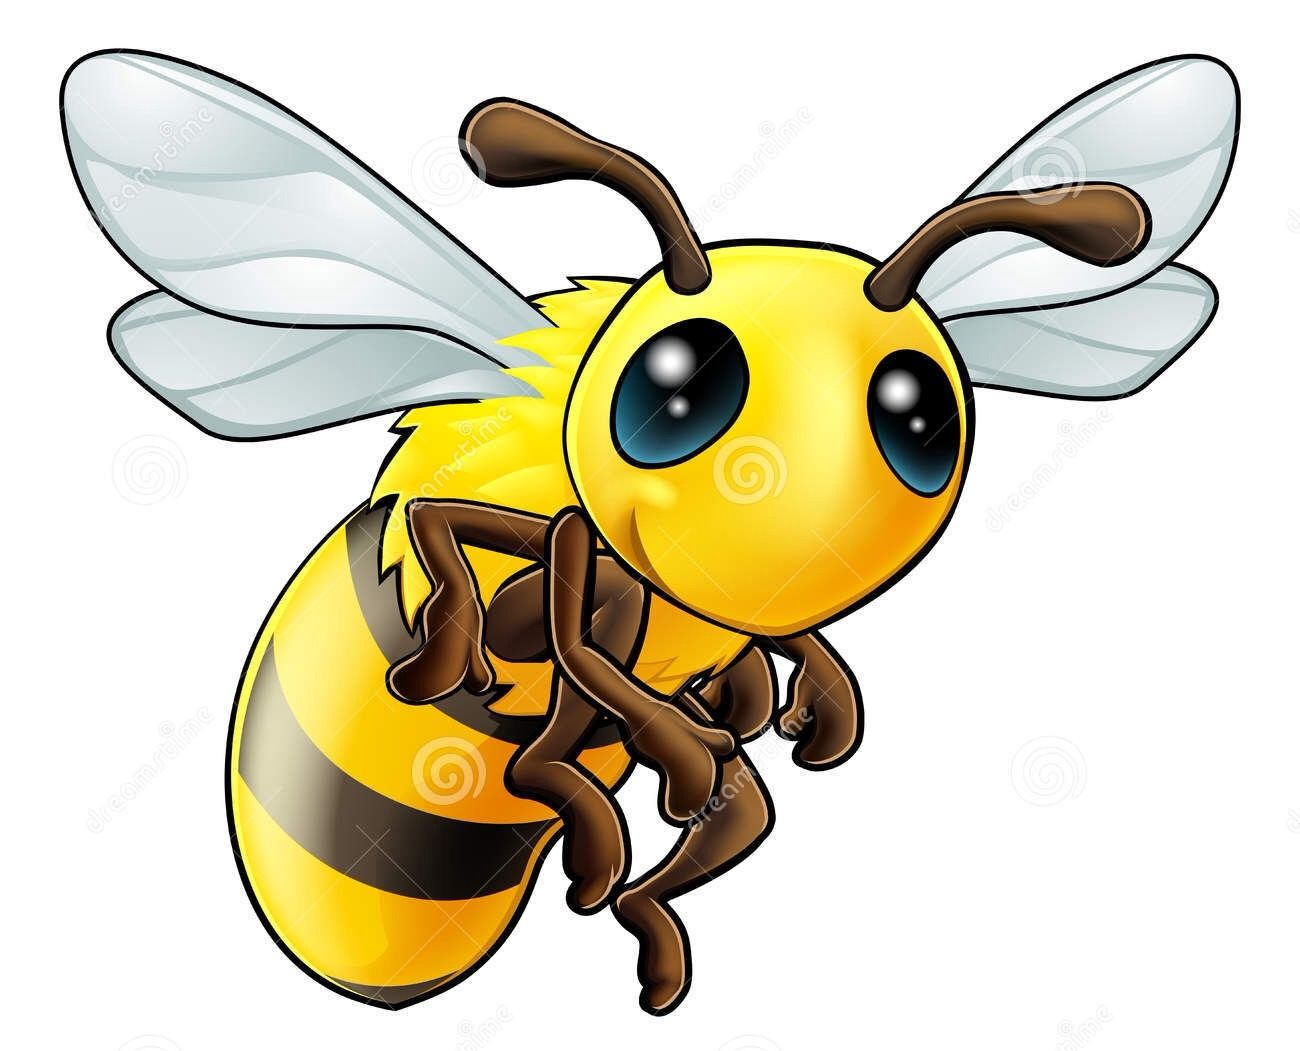 Illustration of an illustration of a cartoon cute bee character vector art clipart and stock vectors